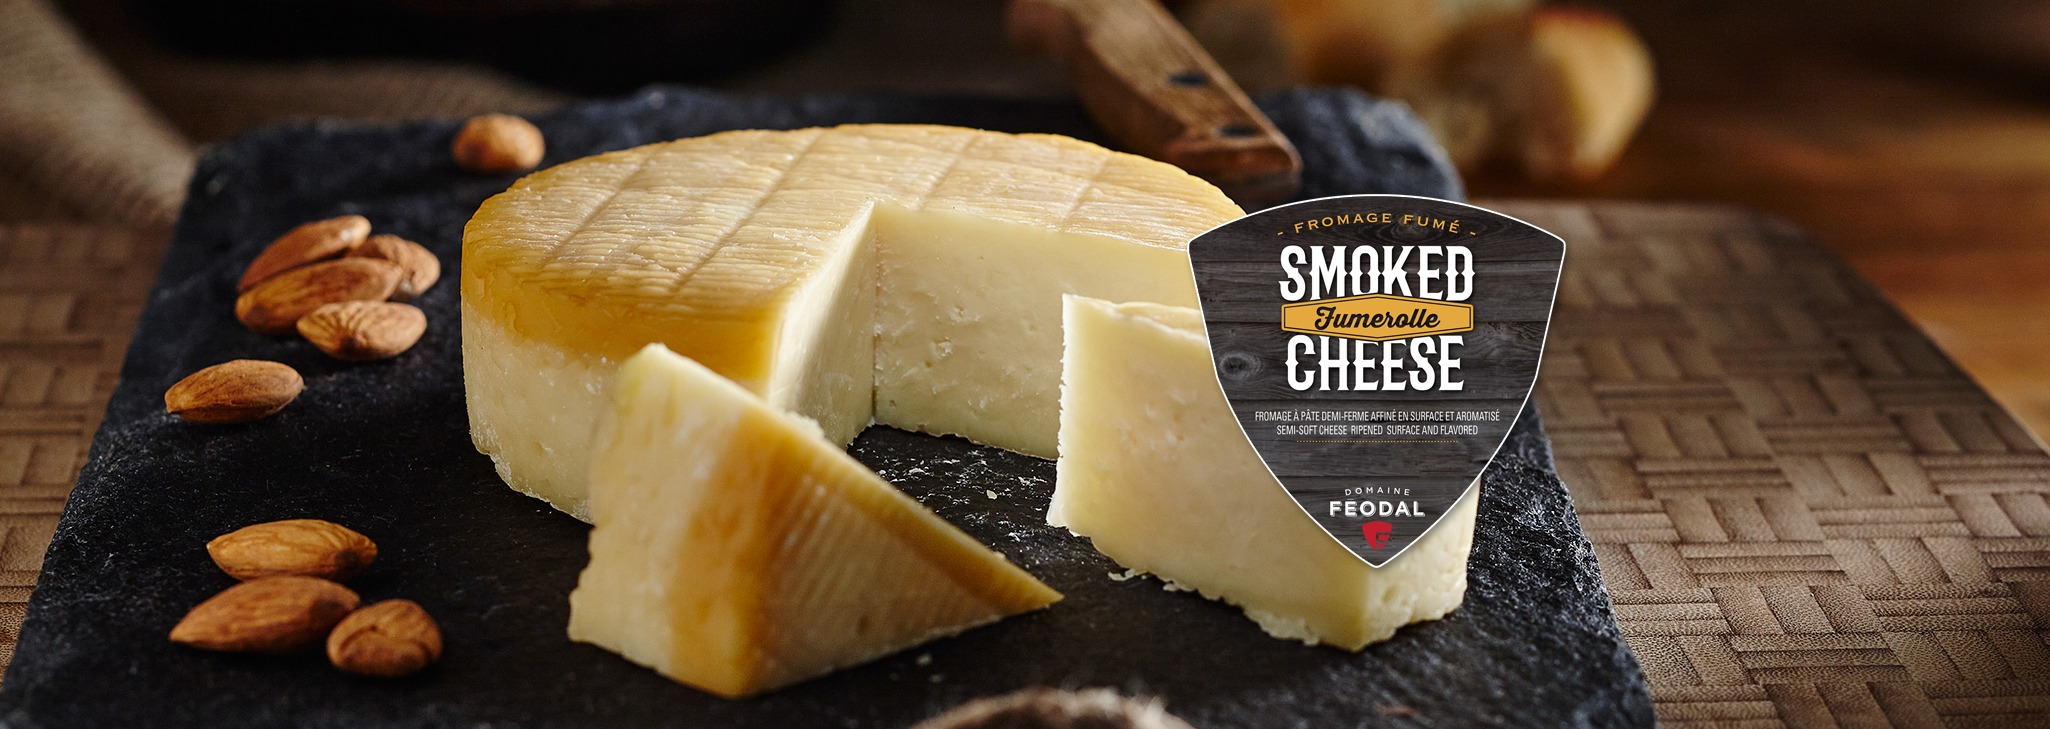 smokedcheese-fromage